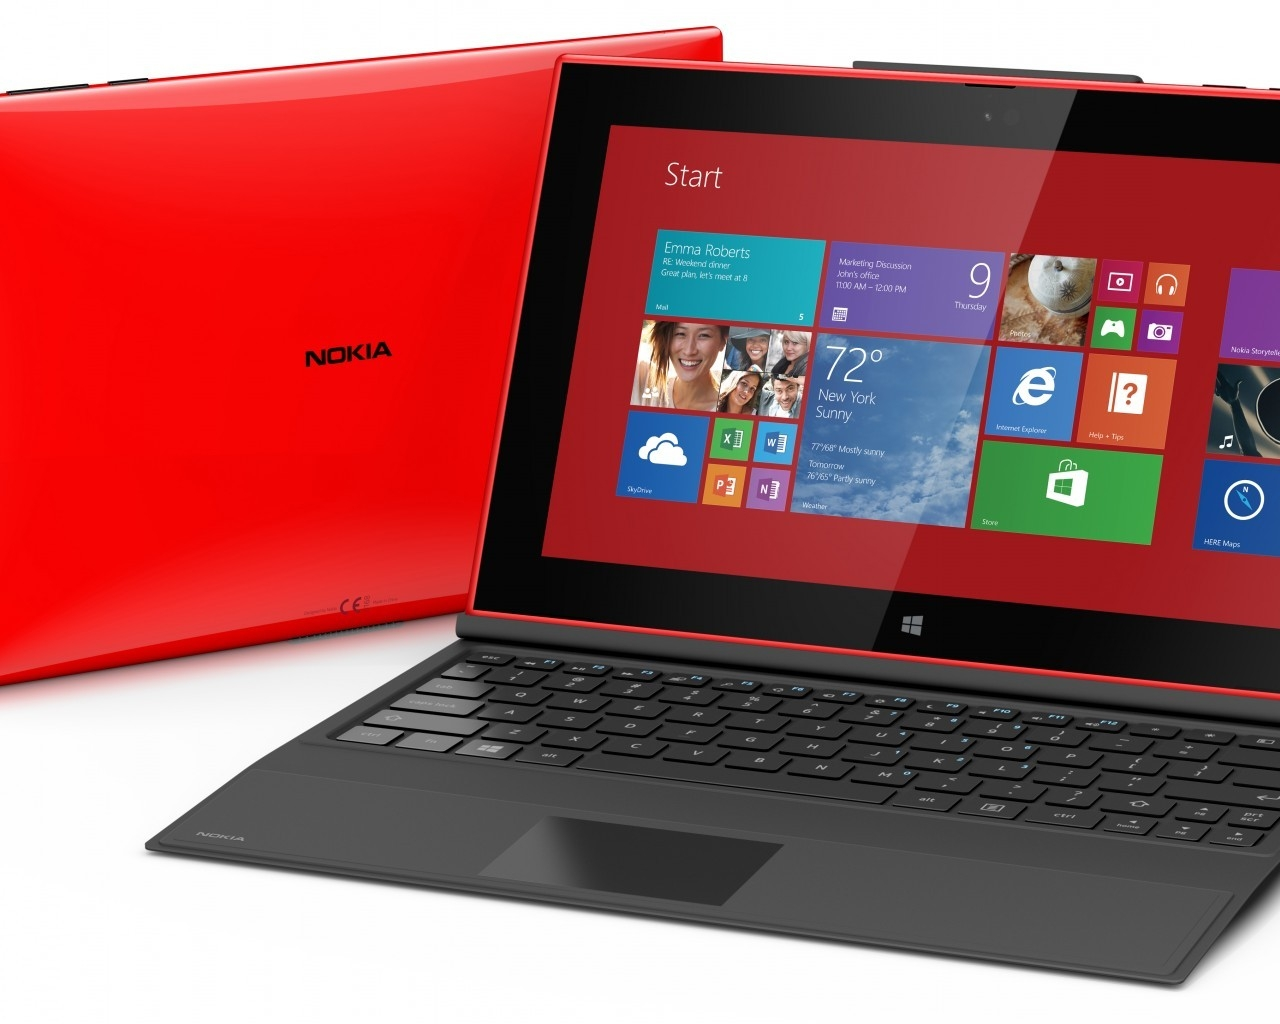 Nokia Lumia 2520 Tablet for 1280 x 1024 resolution